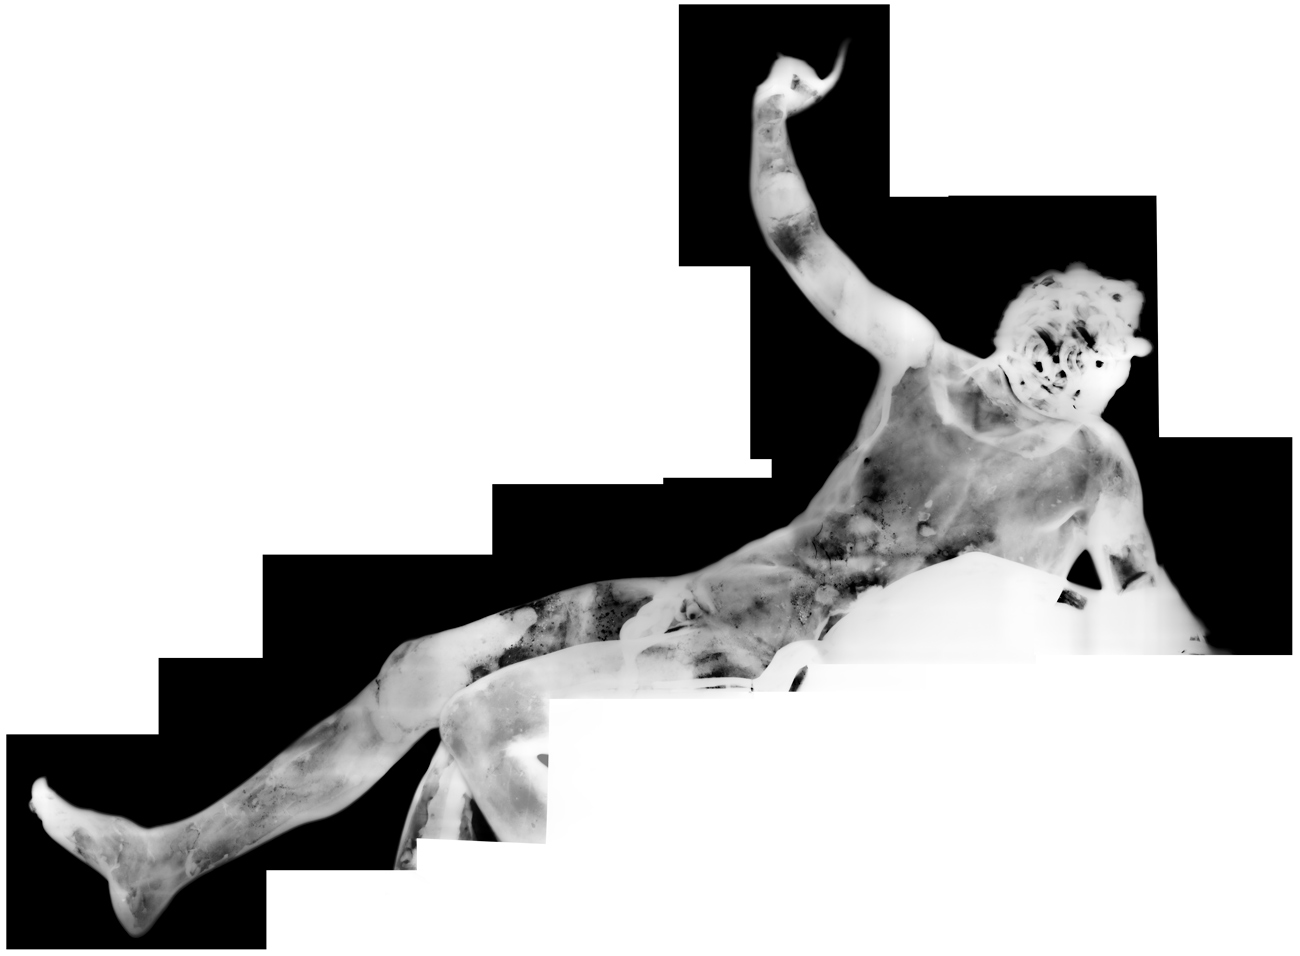 An x-ray of the satyr.